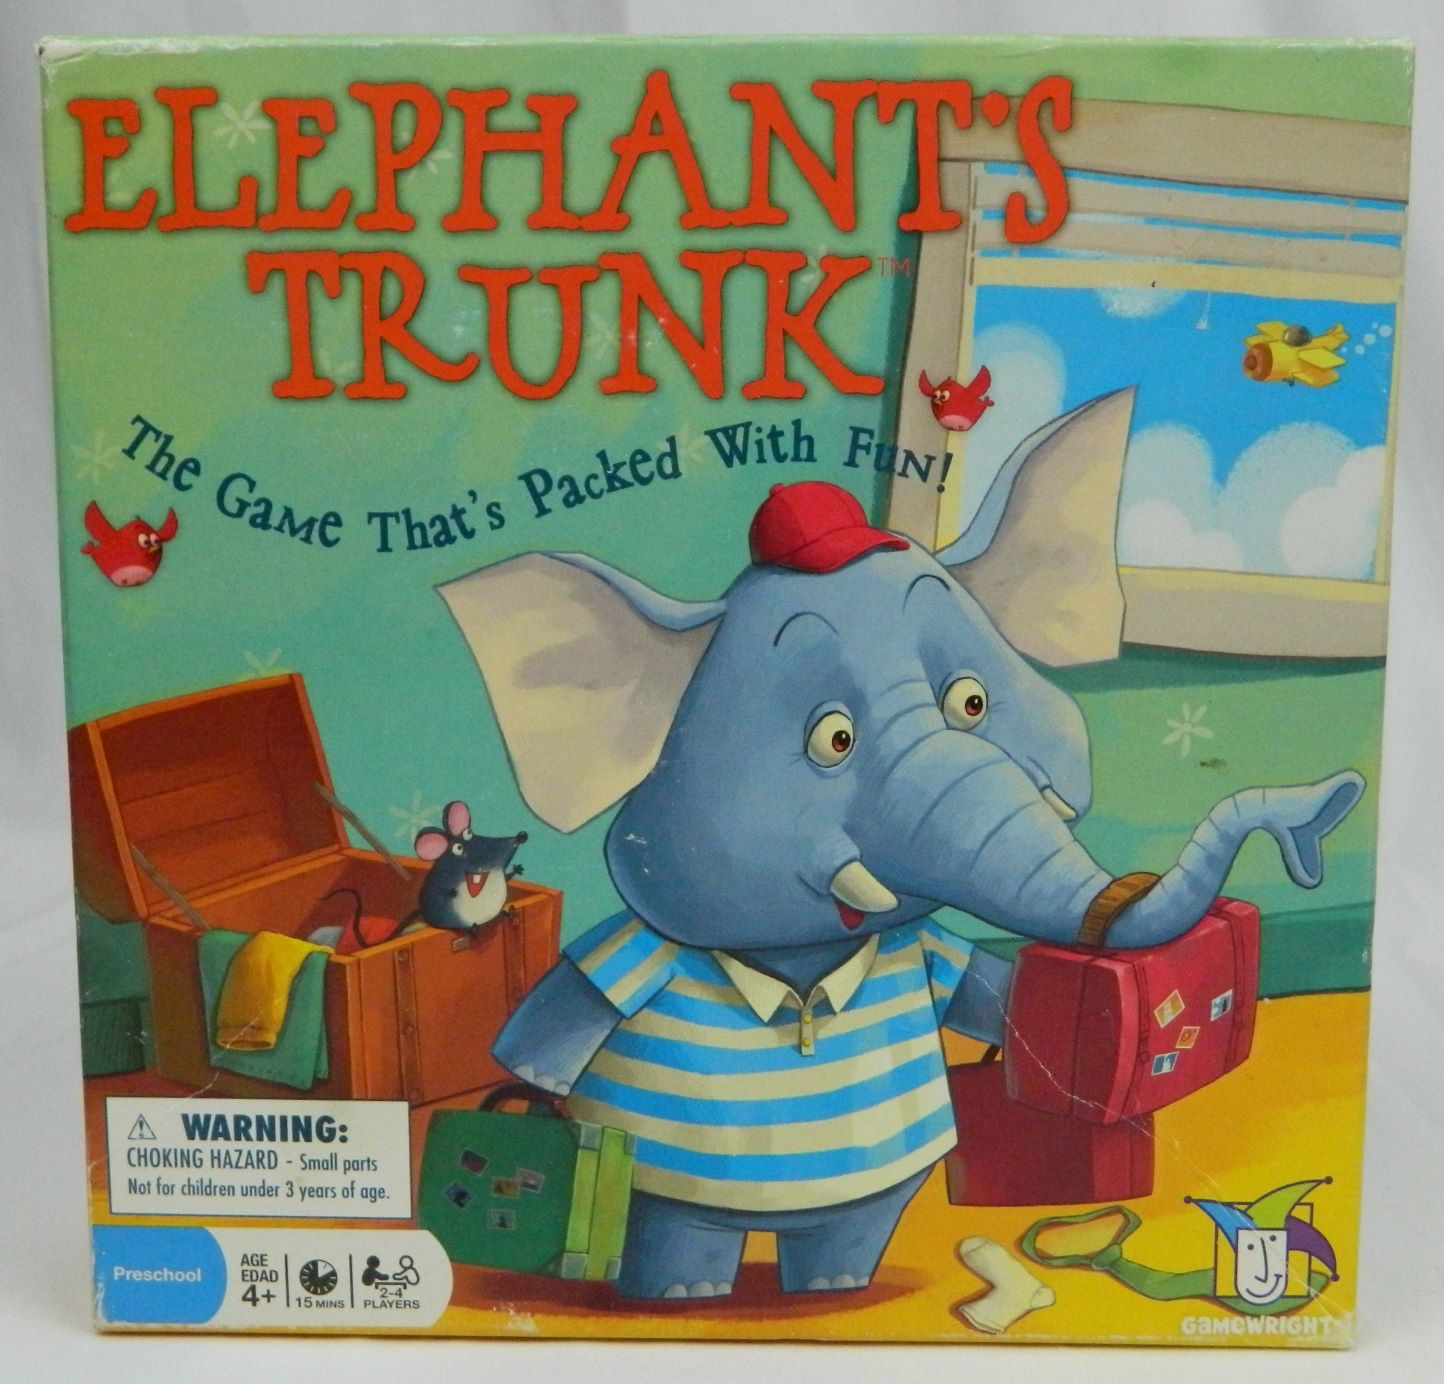 Box for Elephant's Trunk